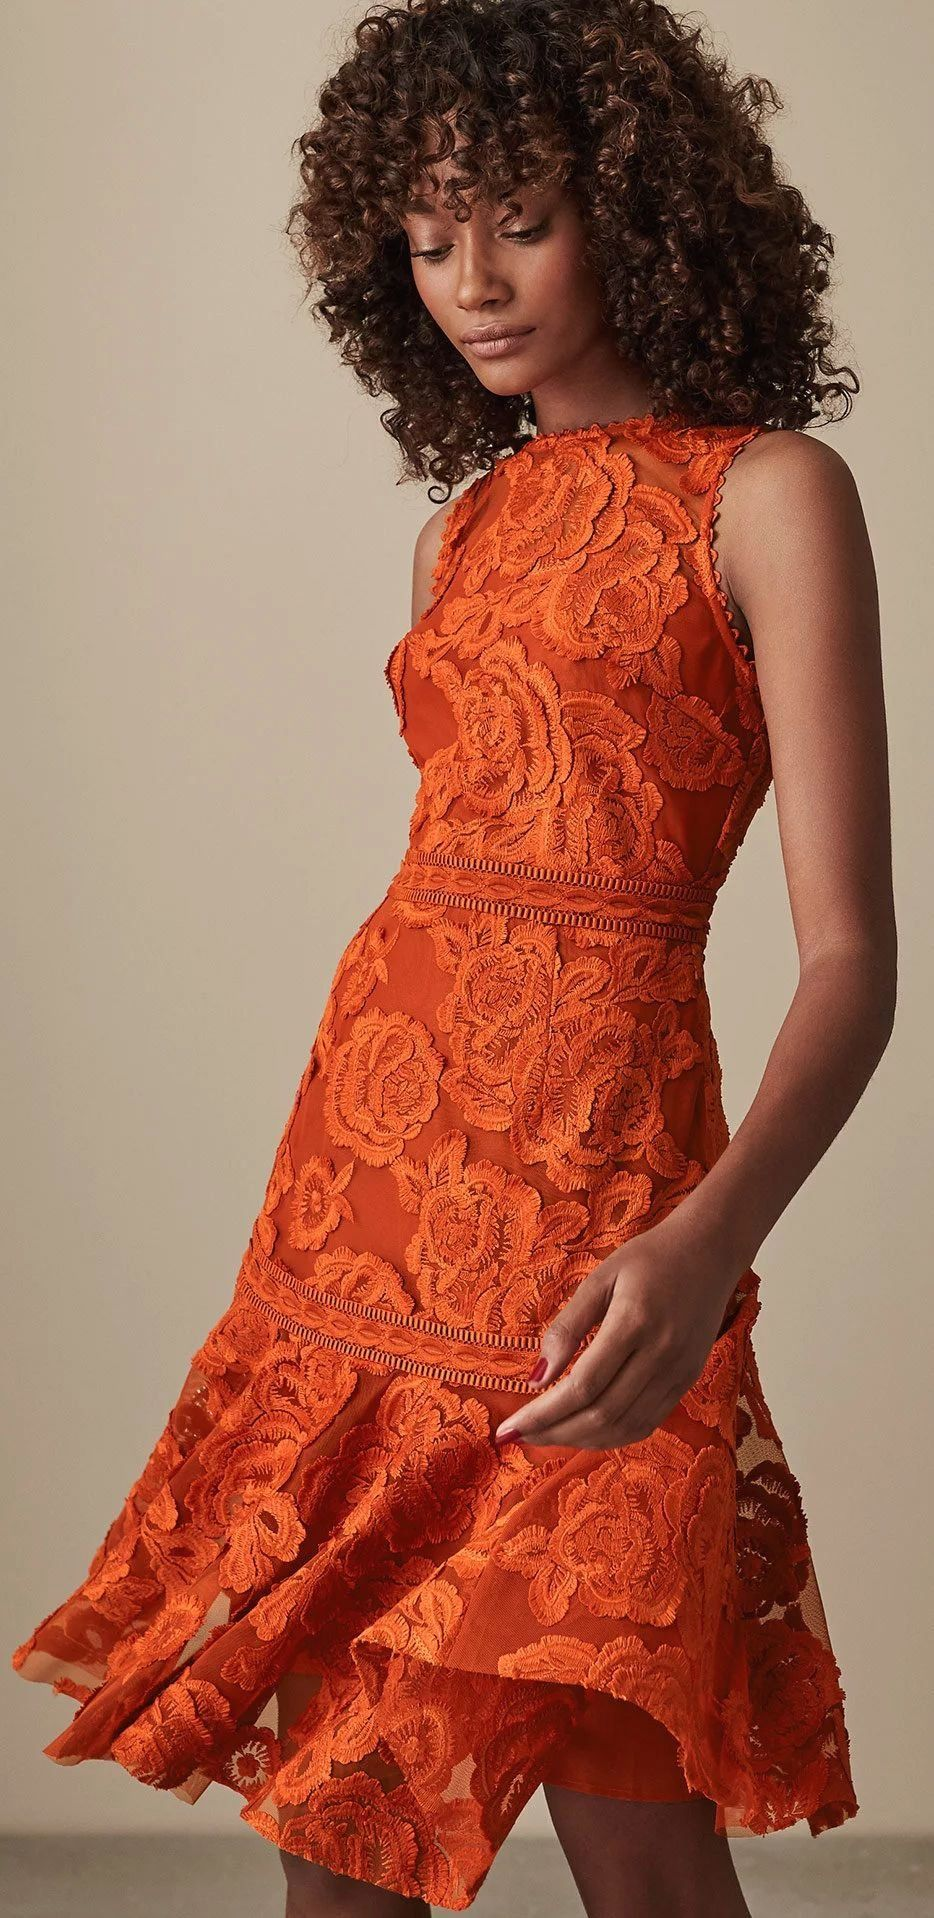 Hatista How To Wear Orange How To Wear Orange 2020 Outfits With Jaffa Or Orange Wedding Guest Dresses Wedding Guest Outfit Spring Wedding Guest Outfit Fall [ 1918 x 934 Pixel ]